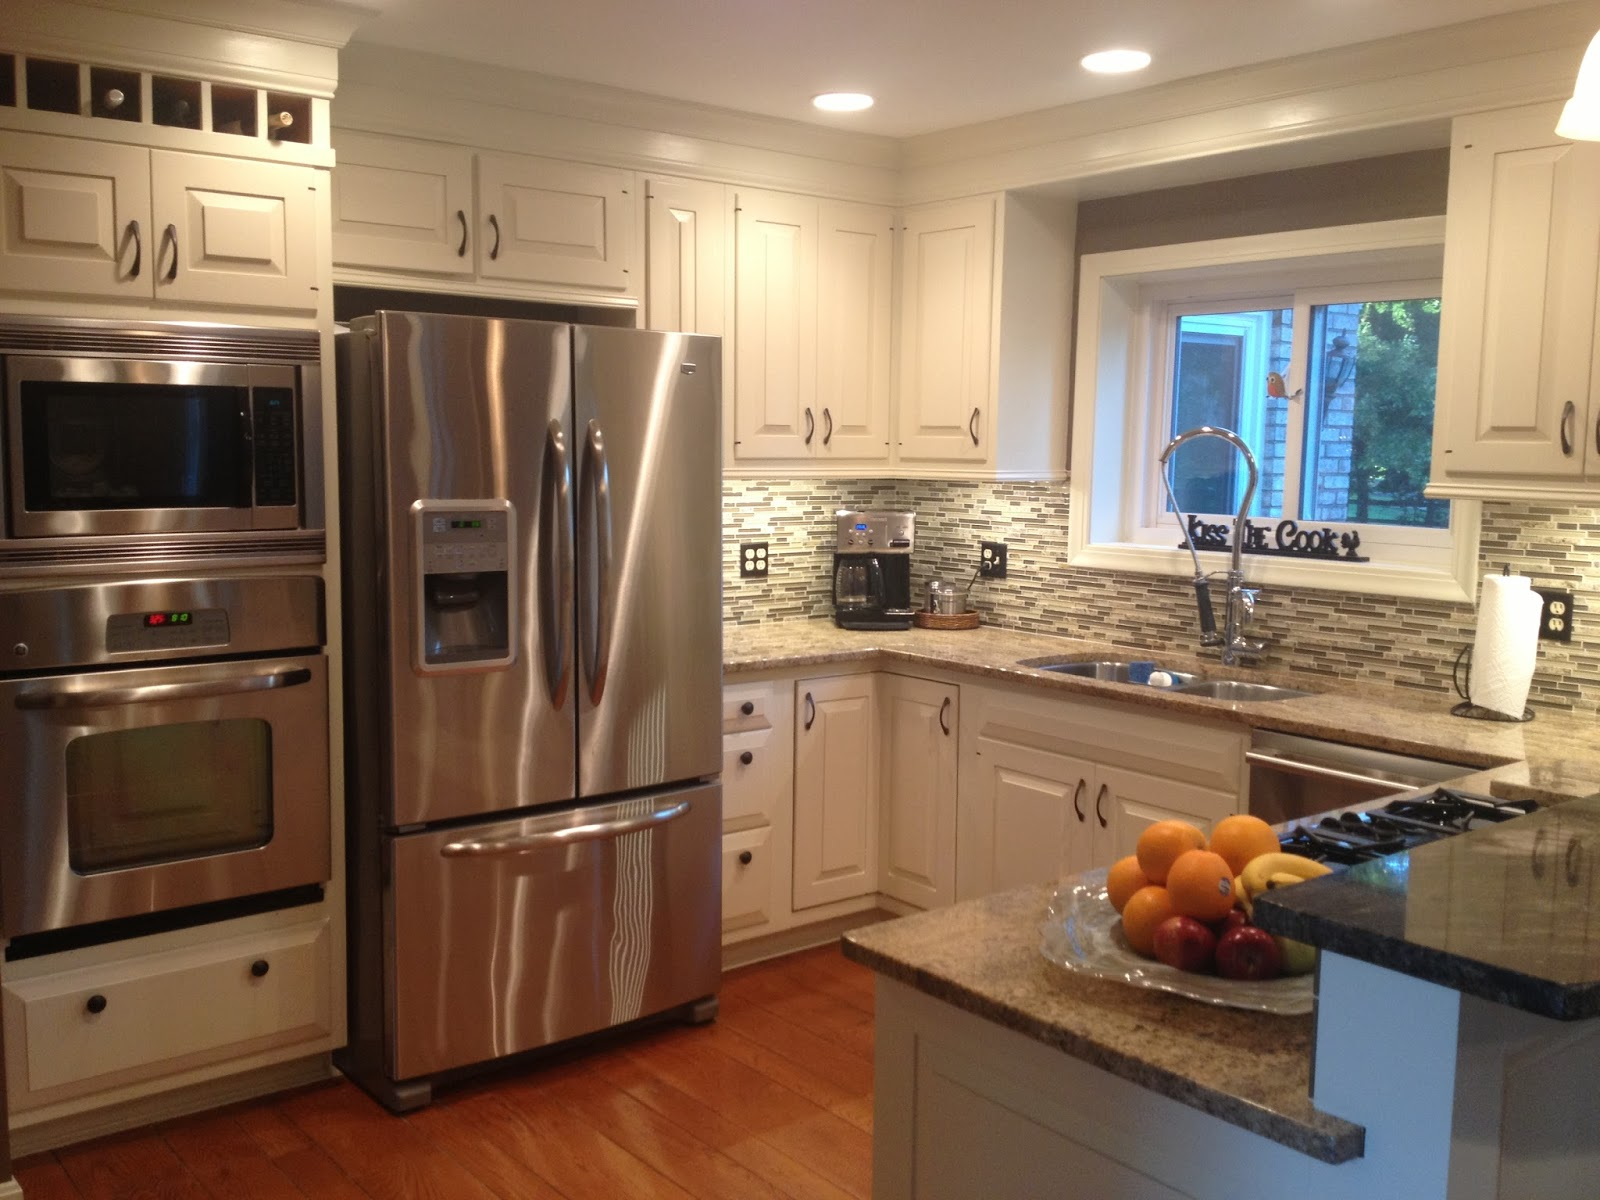 Four seasons style the new kitchen remodel on a budget for Kitchen and remodeling